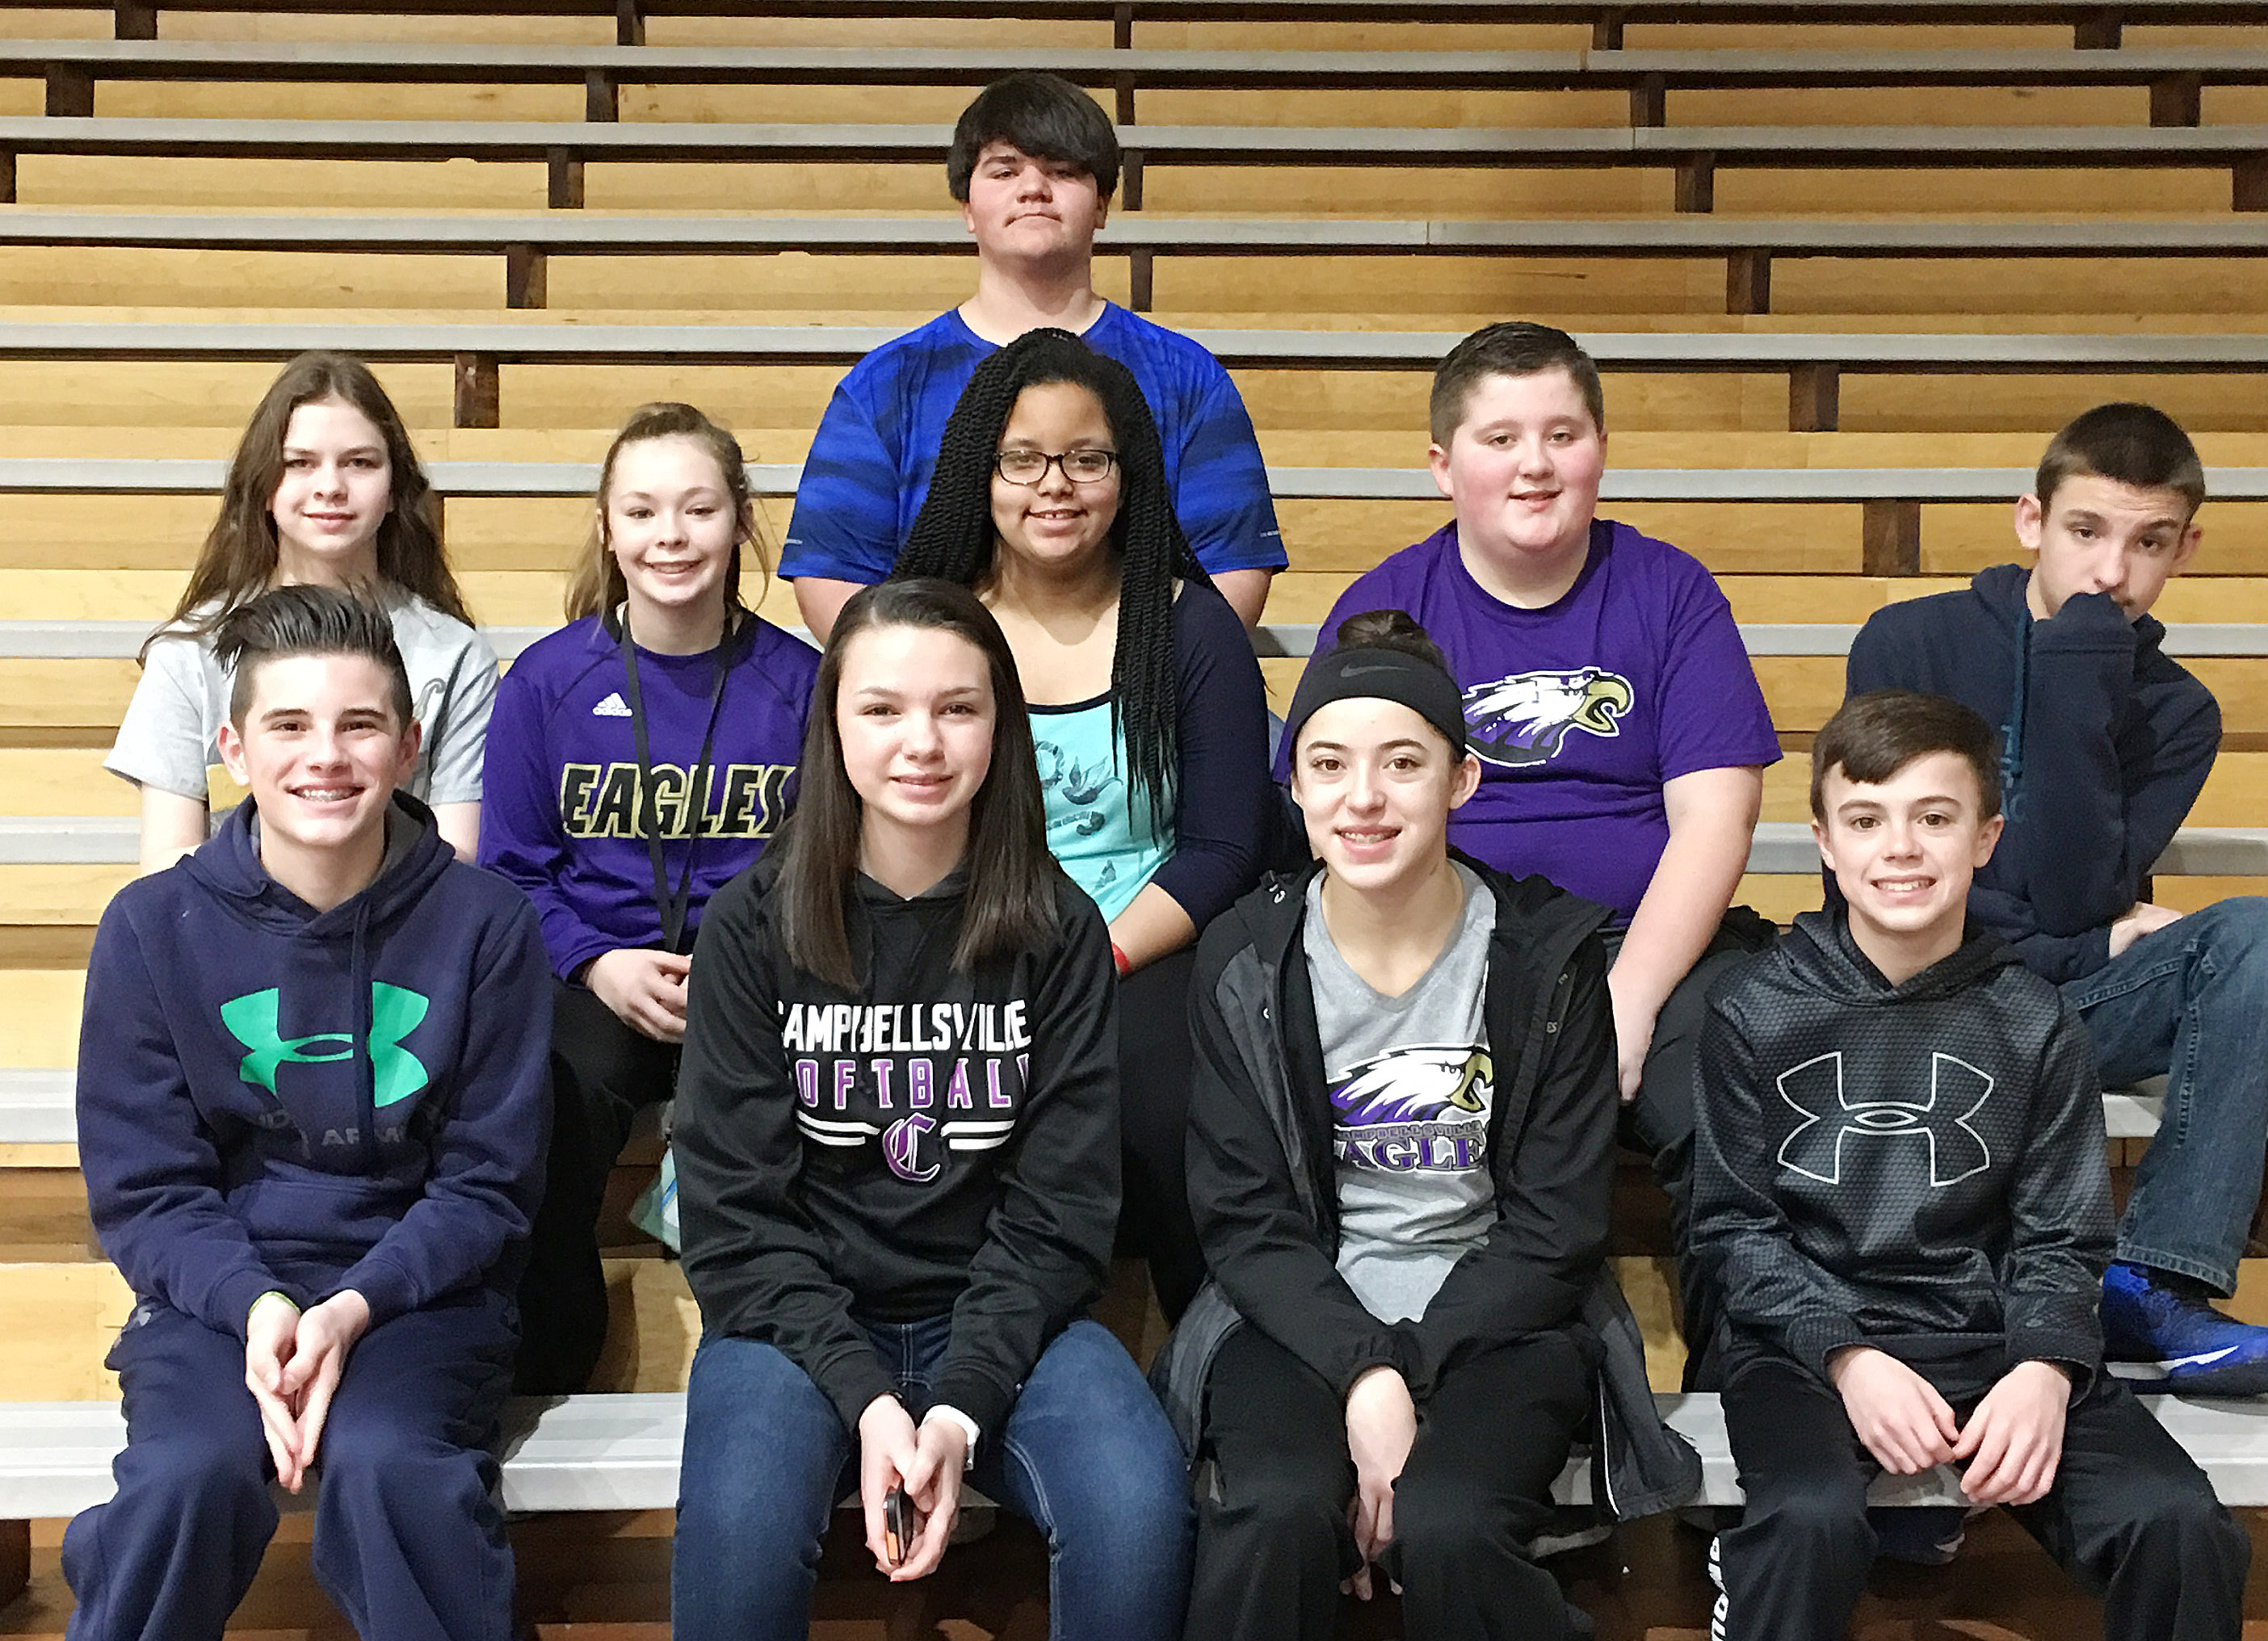 From left, front, are sixth-grader Isaac Garrison, eighth-graders Karley Morris and Kaylyn Smith and seventh-grader Chase Hord. Second row, seventh-grader Karlee Rakel, sixth-graders CheyAnn Edwards, Kiara Graves and Luke McDonald and seventh-grader Nate Mitchell. Back, eighth-grader Logan Rakes. Absent from the photo are seventh-grader Bri Hayes and eighth-grader Joseph Mayes.